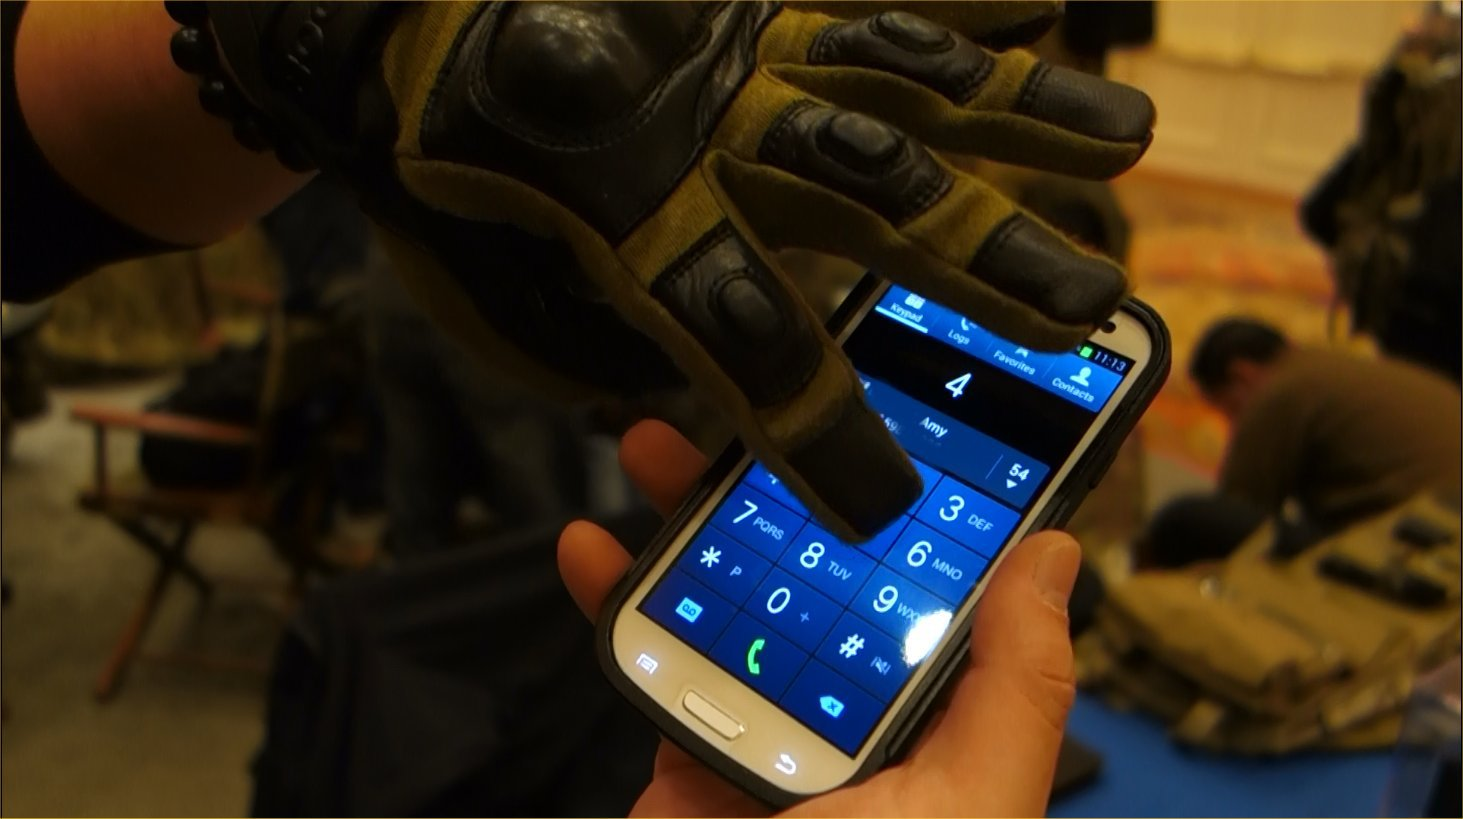 Condor Outdoor Syncro Tactical Glove Tactical Shooting Gloves with HK251 Touchtec Nanotechnology Leather Andy Chen SHOT Show 2013 David Crane DefenseReview.com DR 5 Condor Syncro Hard Knuckle Tactical Glove with TouchTec Nanotechnology: Touchscreen Friendly Tactical Shooting Gloves Allow You to Operate Smartphone and Tablet Computer! (Video!)